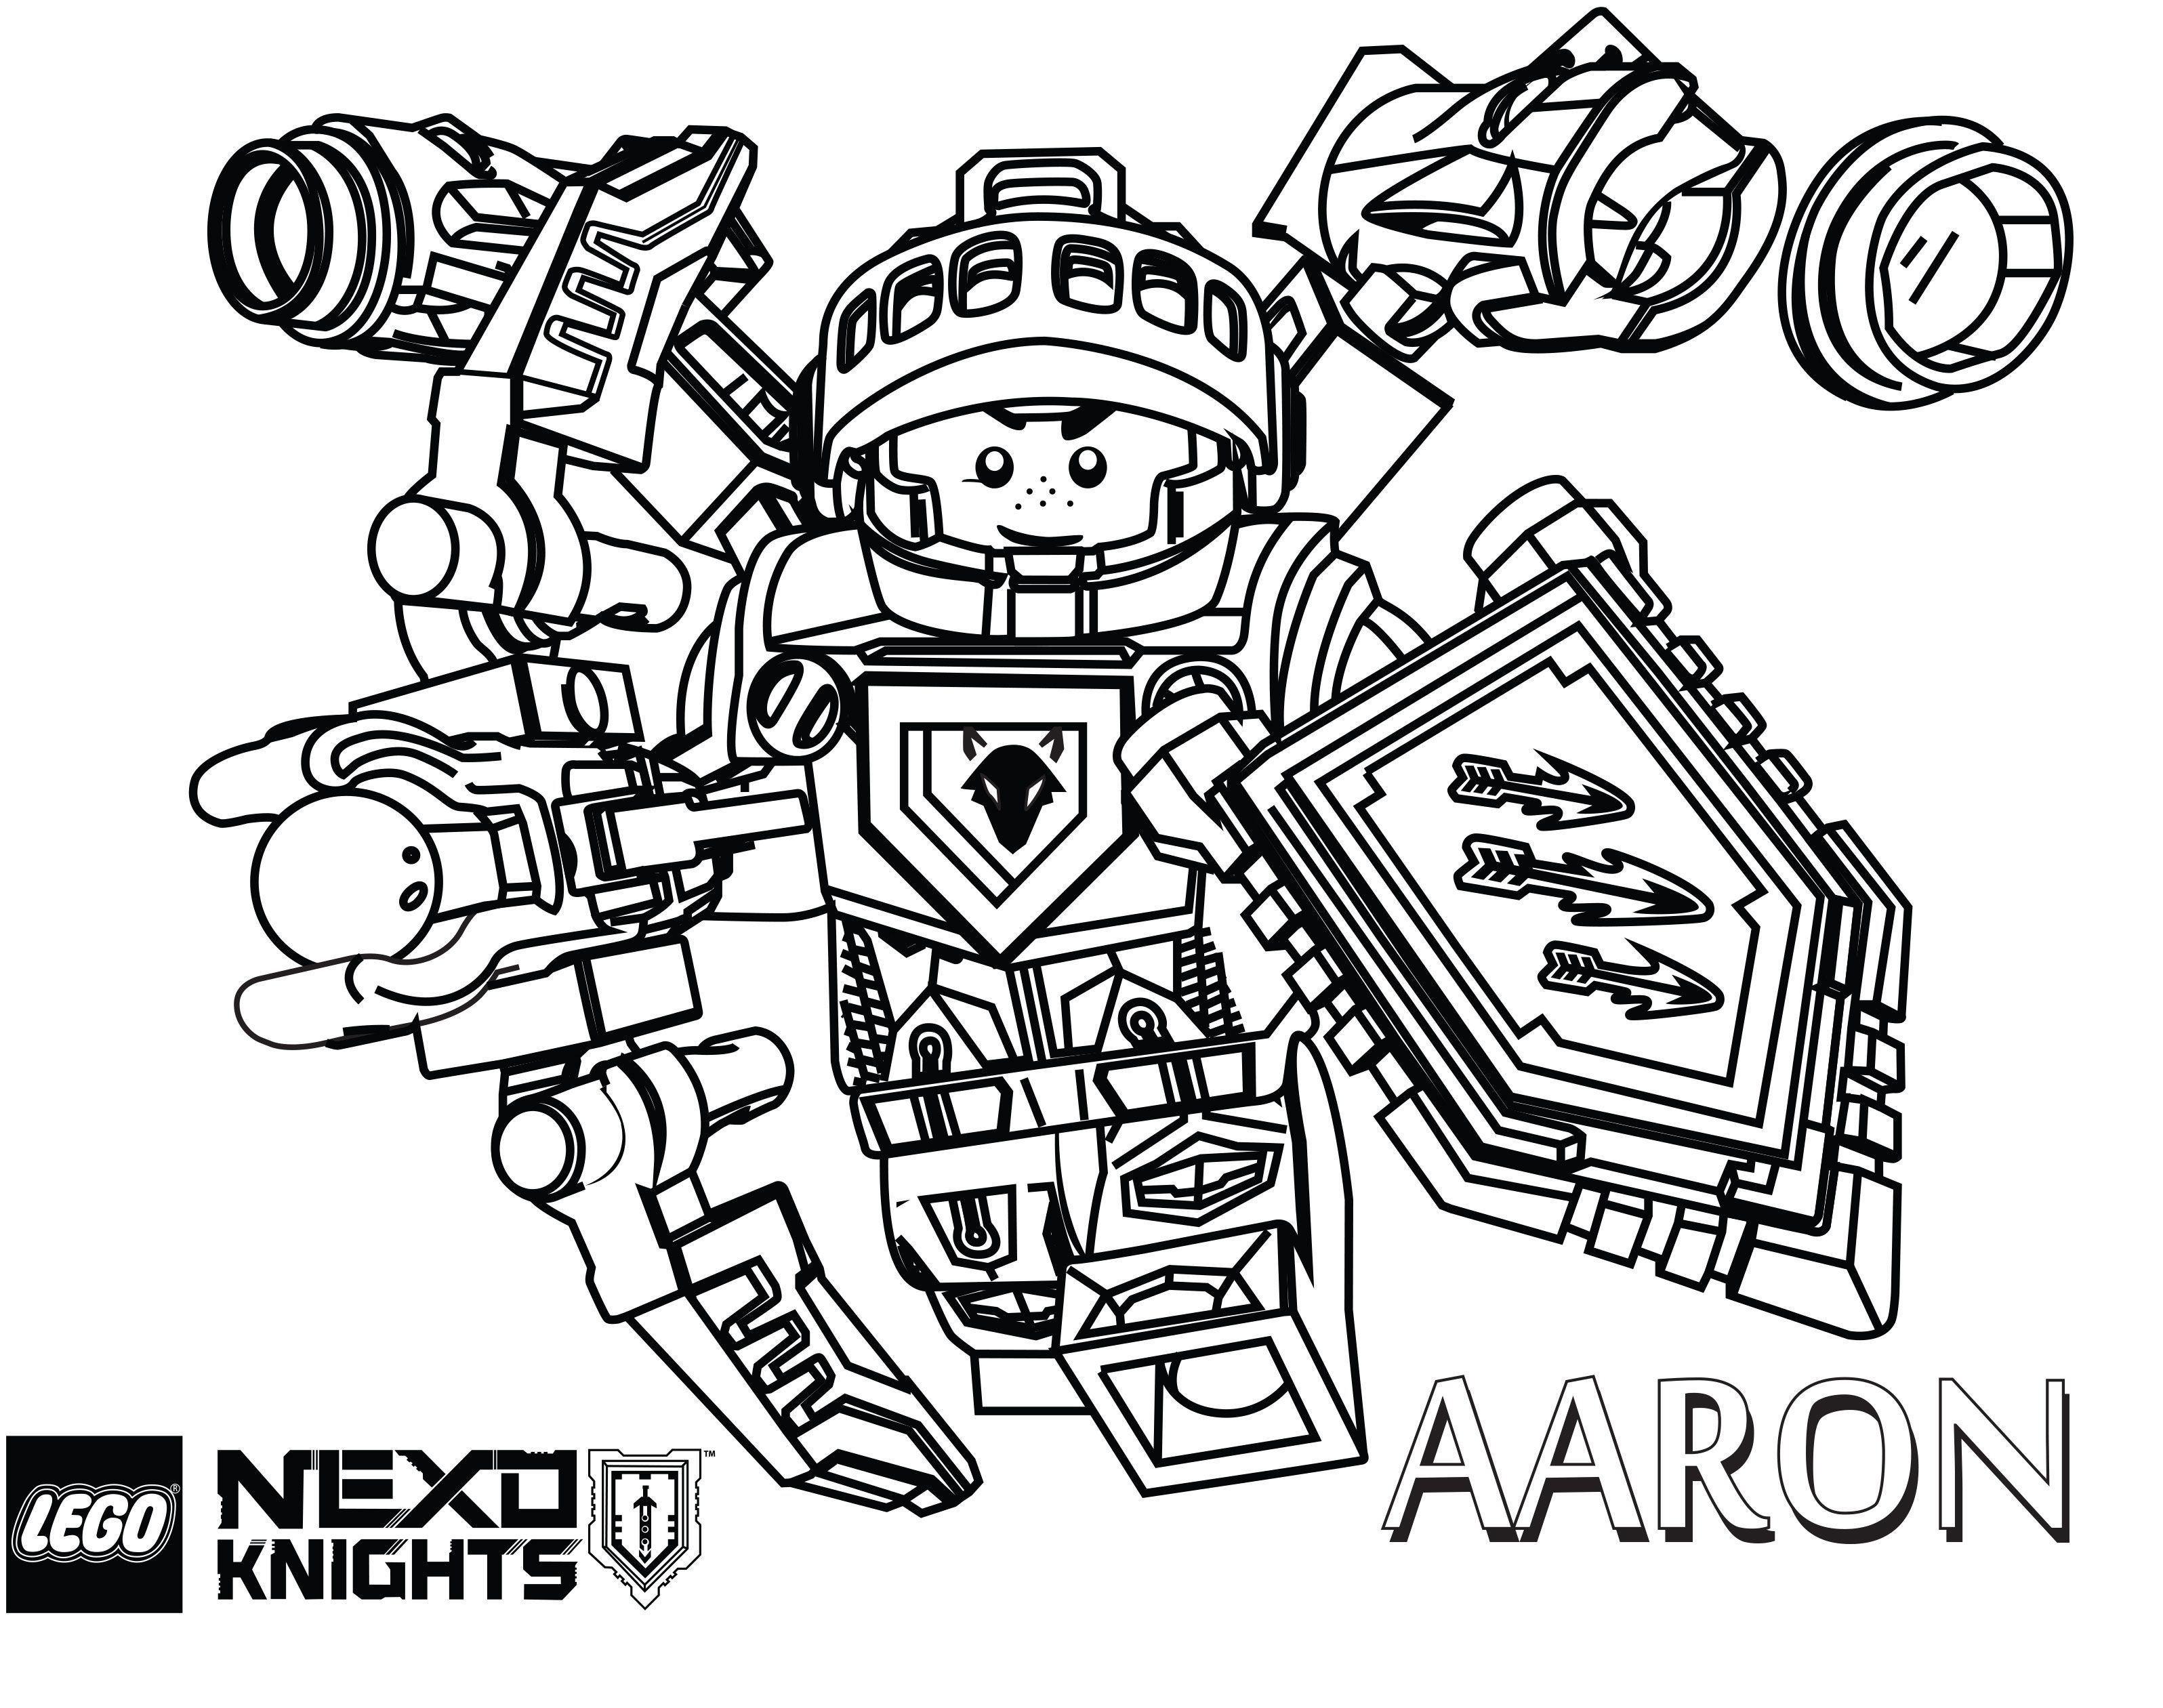 LEGO Nexo Knights Coloring Pages - The Brick Fan